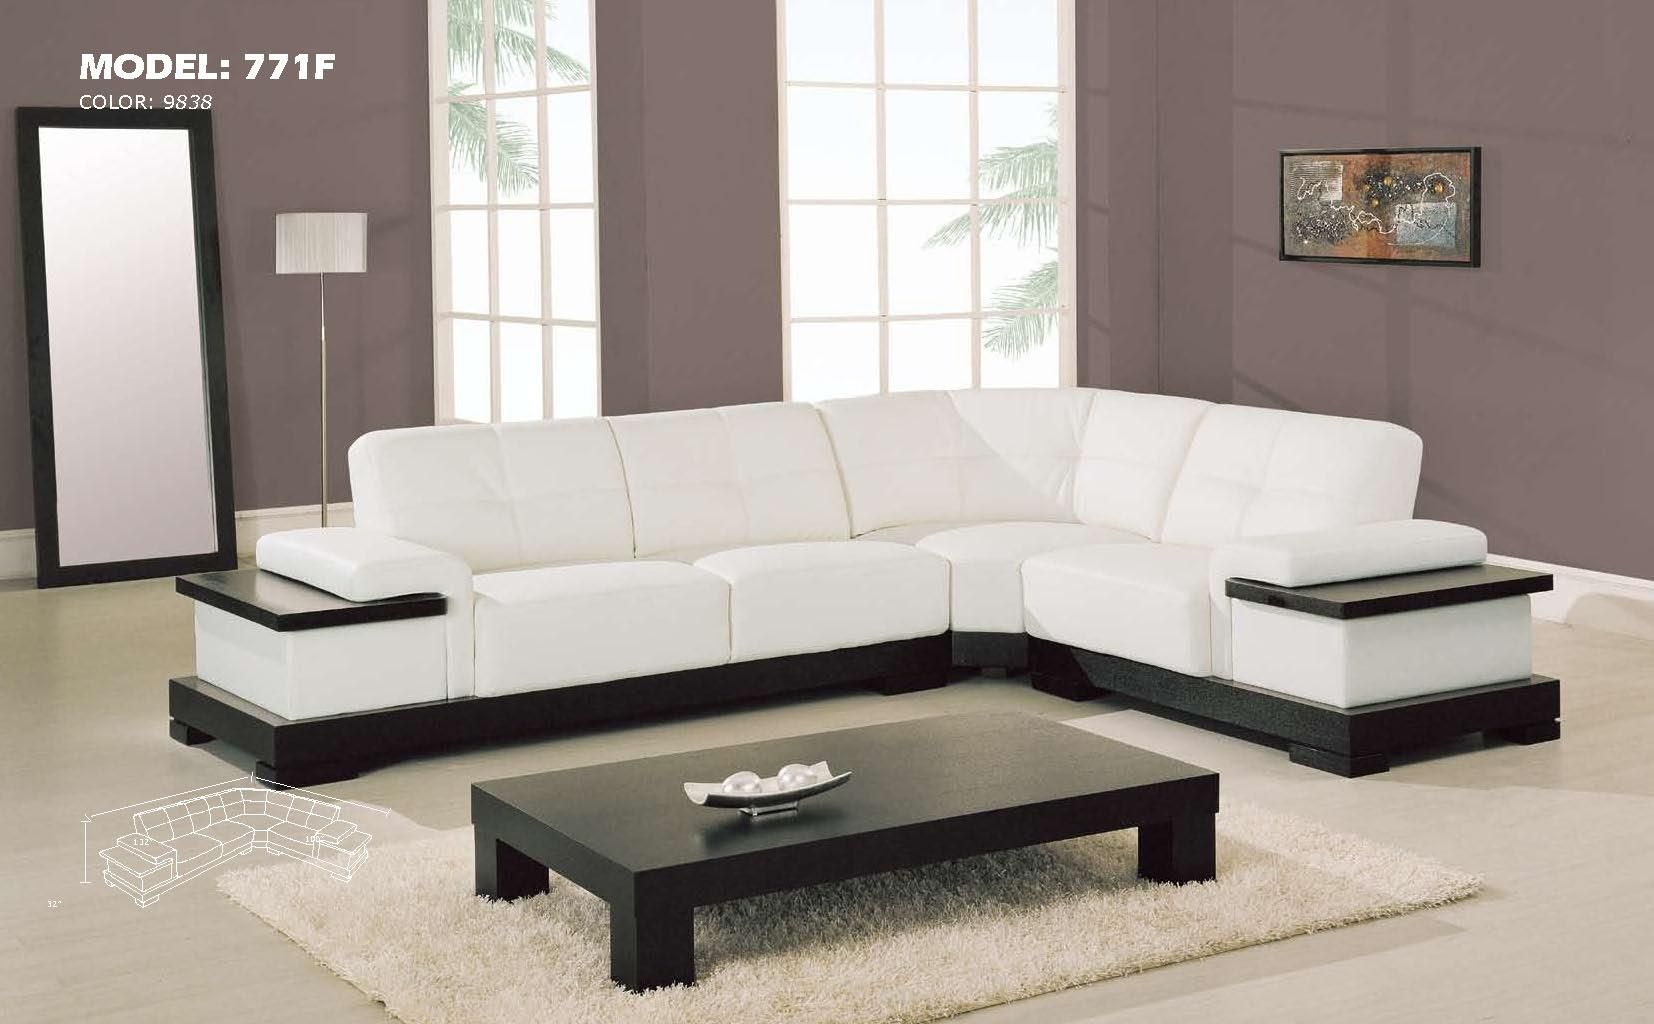 or functional room and sofas size high large bad good gardner of end sofa sectionals living sectional white full barrel furniture chocolate modern chaise crate contemporary for